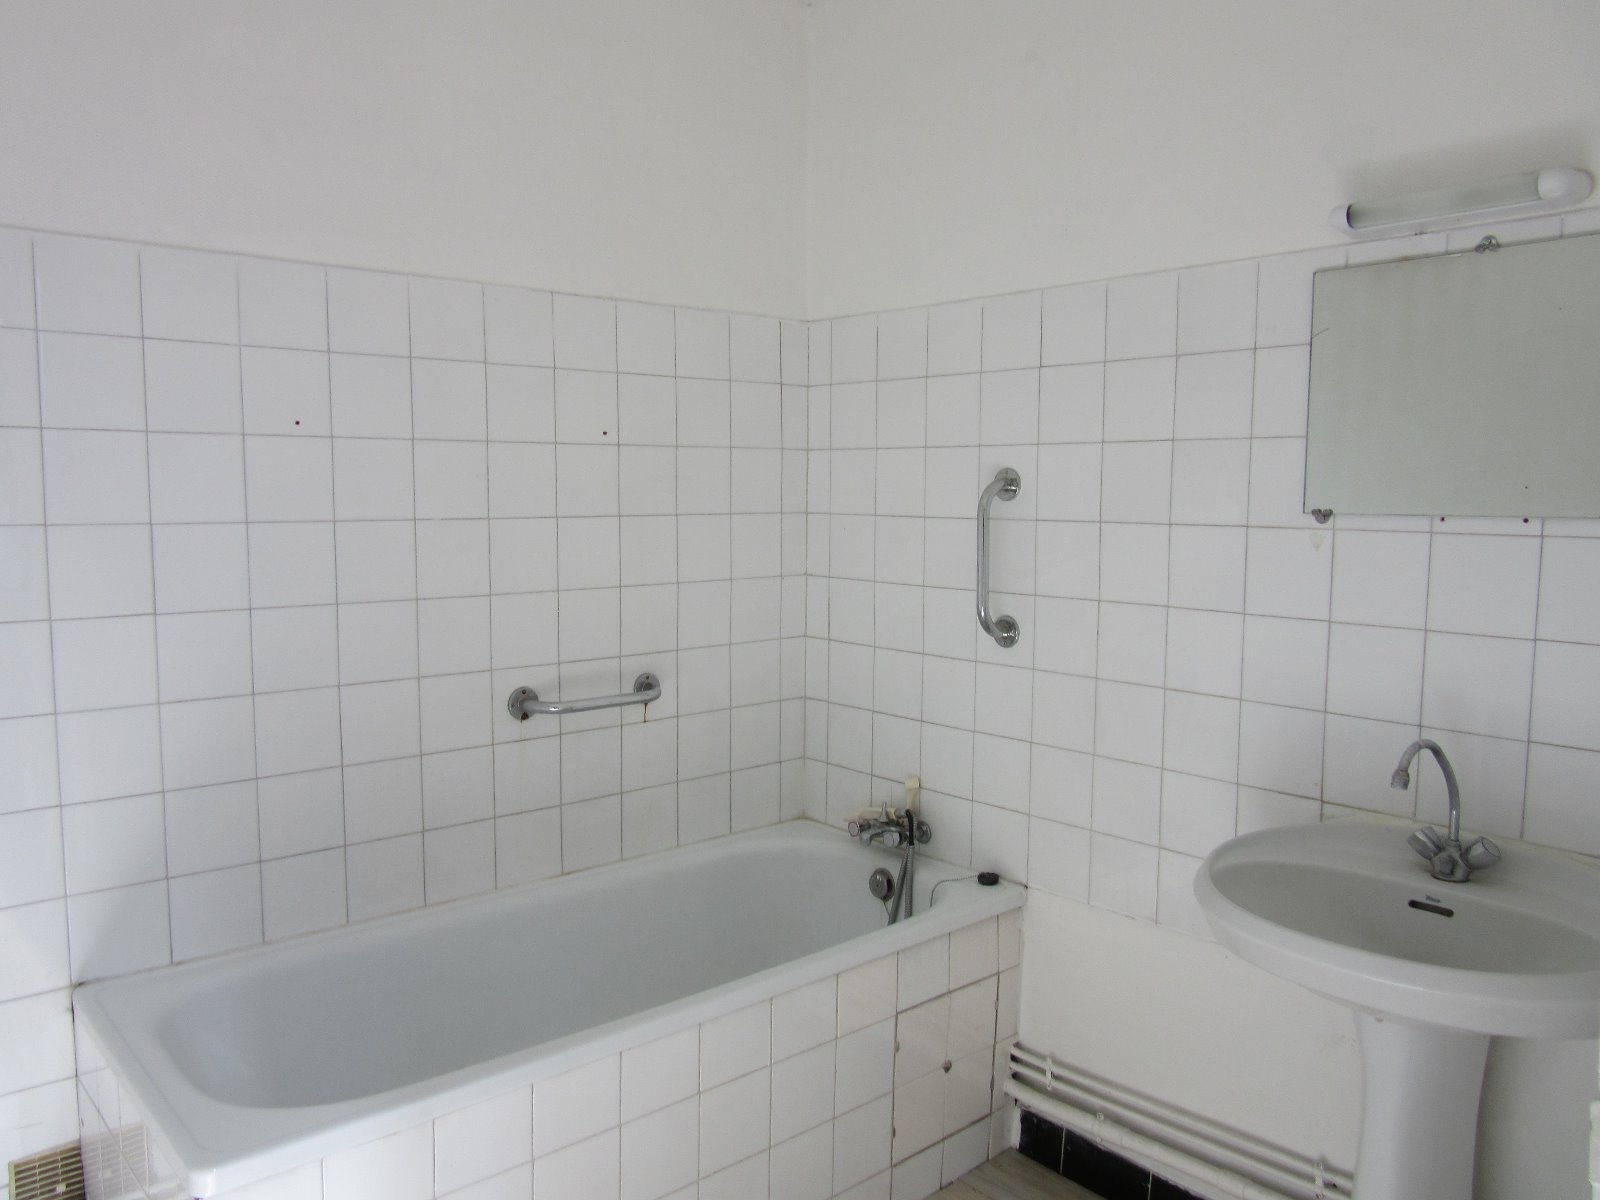 APPARTEMENT 60M² RENOVE, QUARTIER RECHERHE